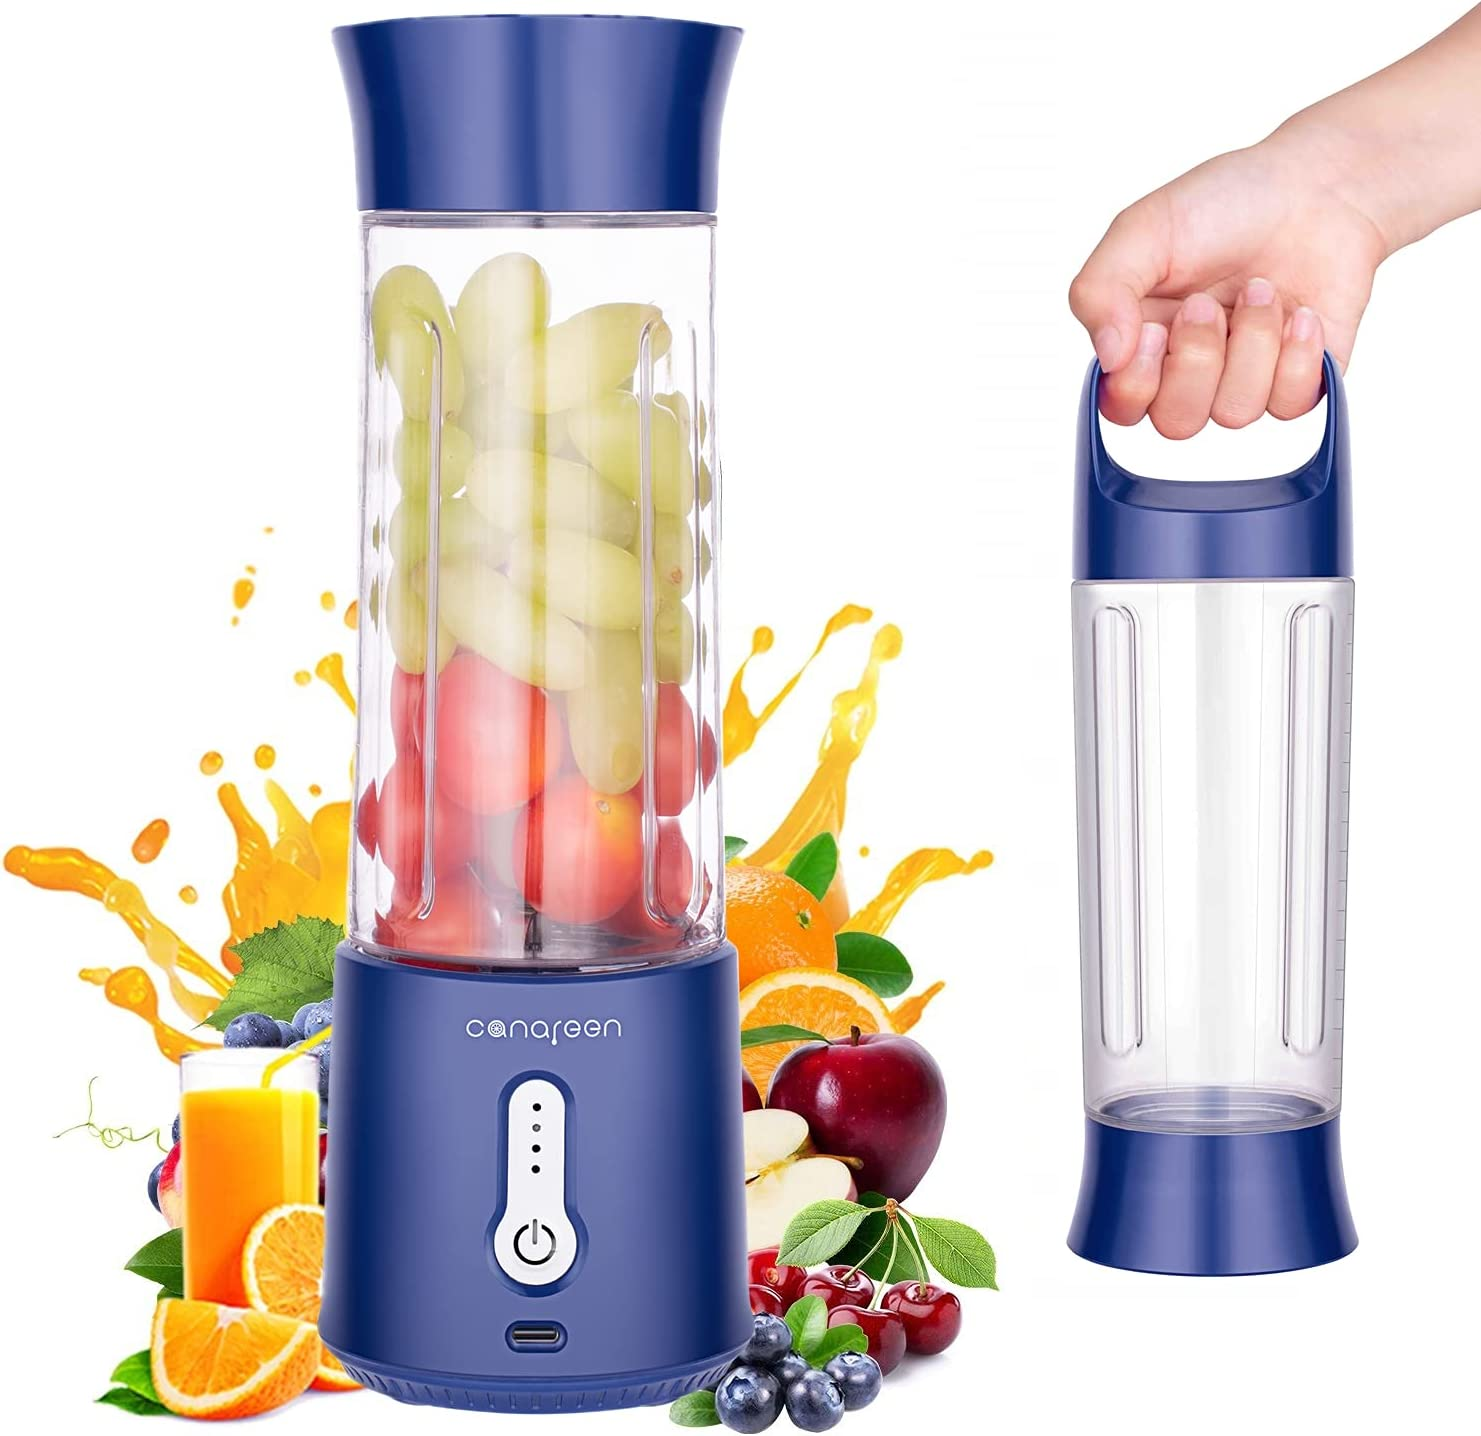 AIKIDS Portable Blender - 17Oz Personal Blender for Smoothies and Shakes | 4000mAh Rechargeable USB Mini Blender with Six Blades | Handheld Blender for Sports Travel Gym